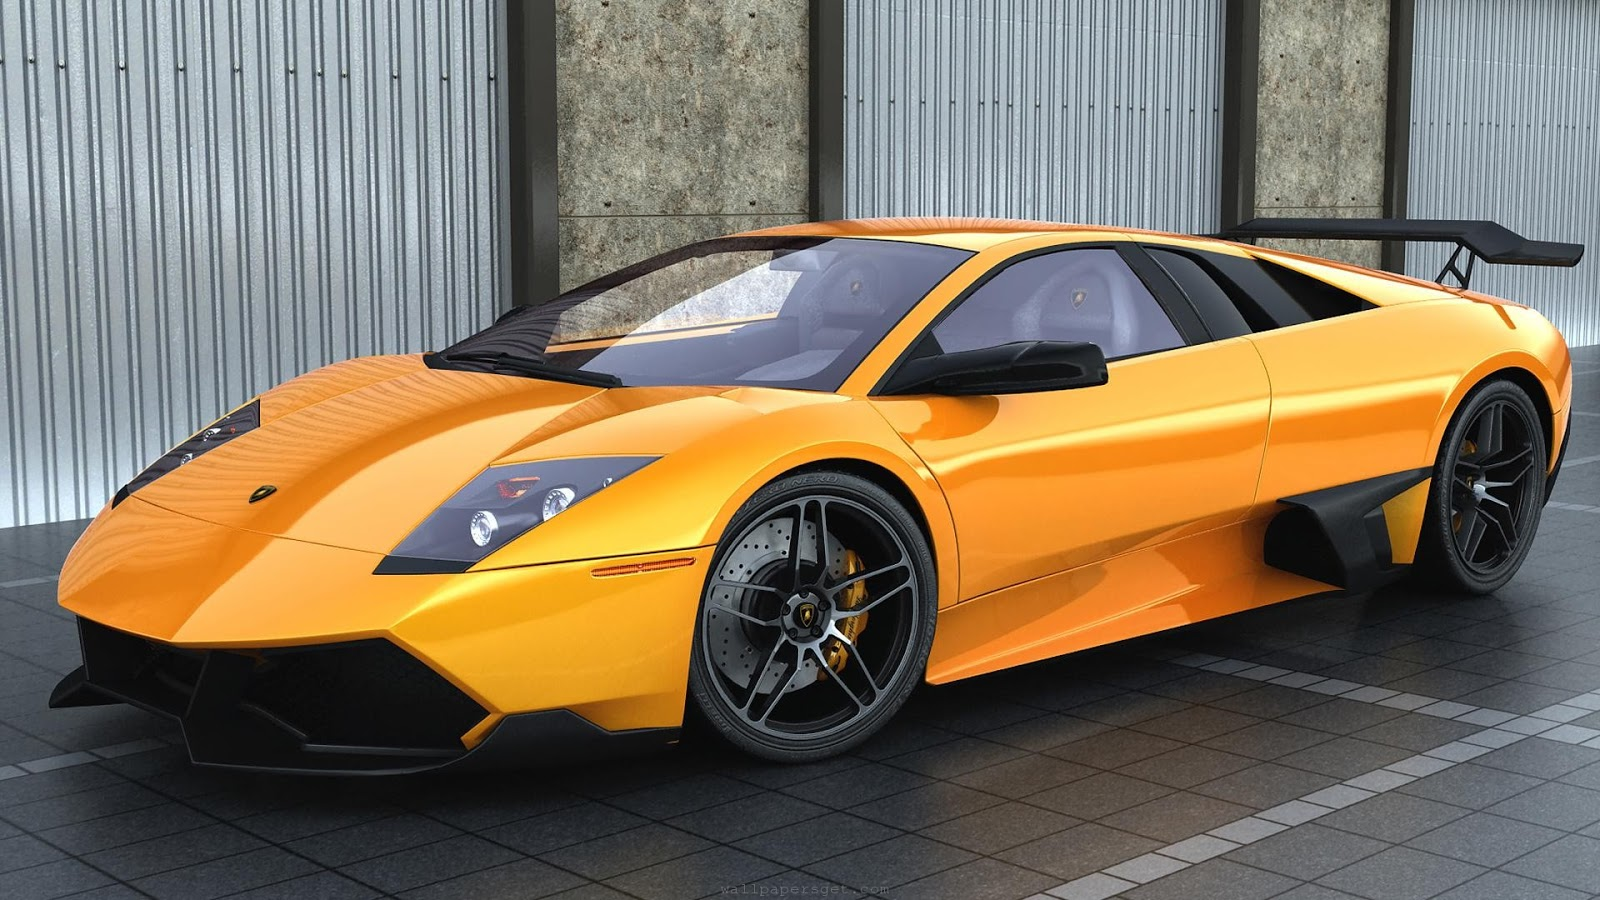 Luxury Lamborghini Cars Orange Lamborghini Murcielago Wallpaper